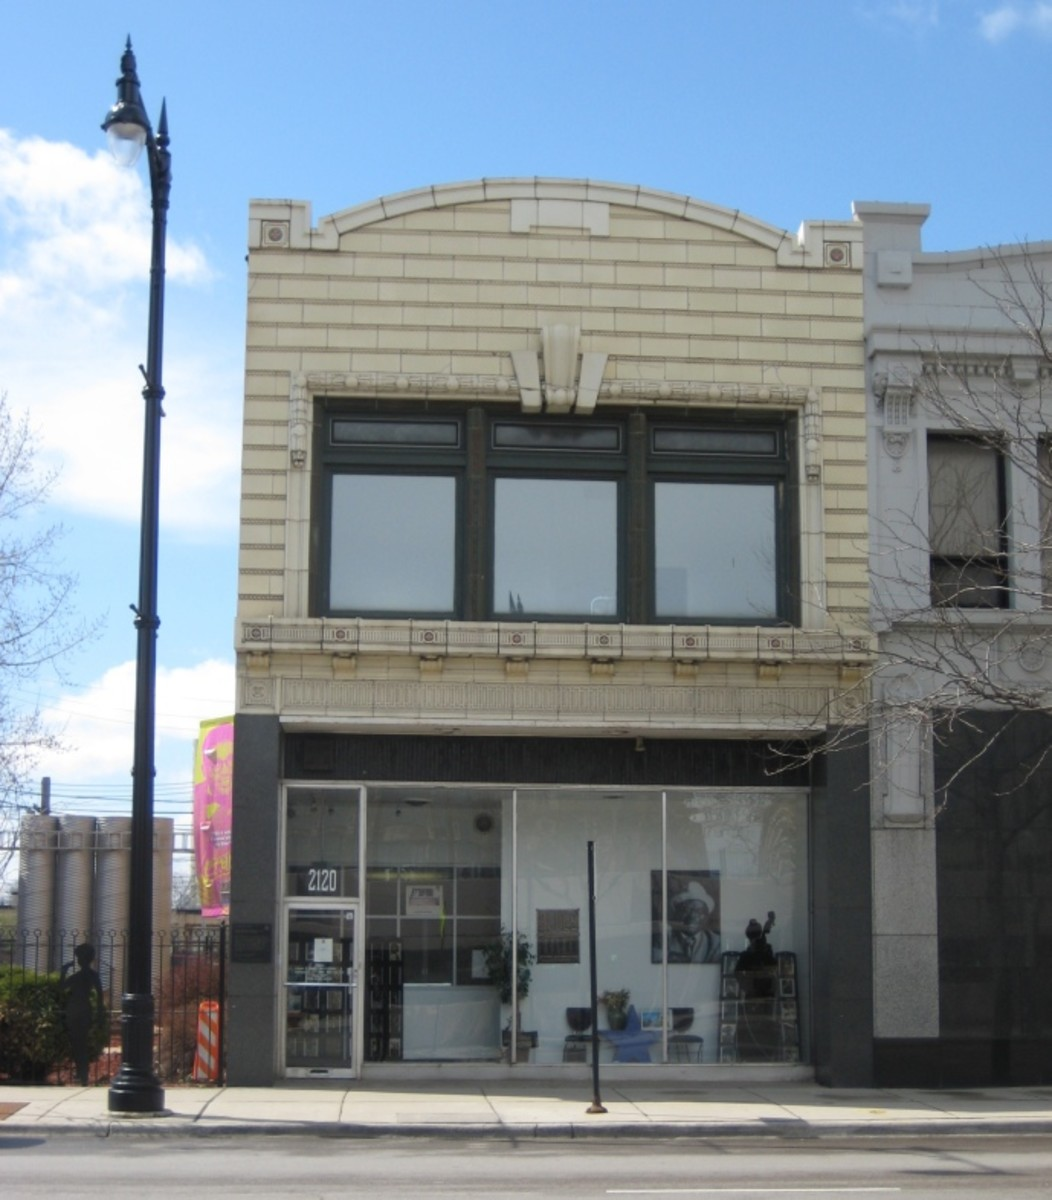 Chicago's Chess Records Studios at 2120 S. Michigan Avenue